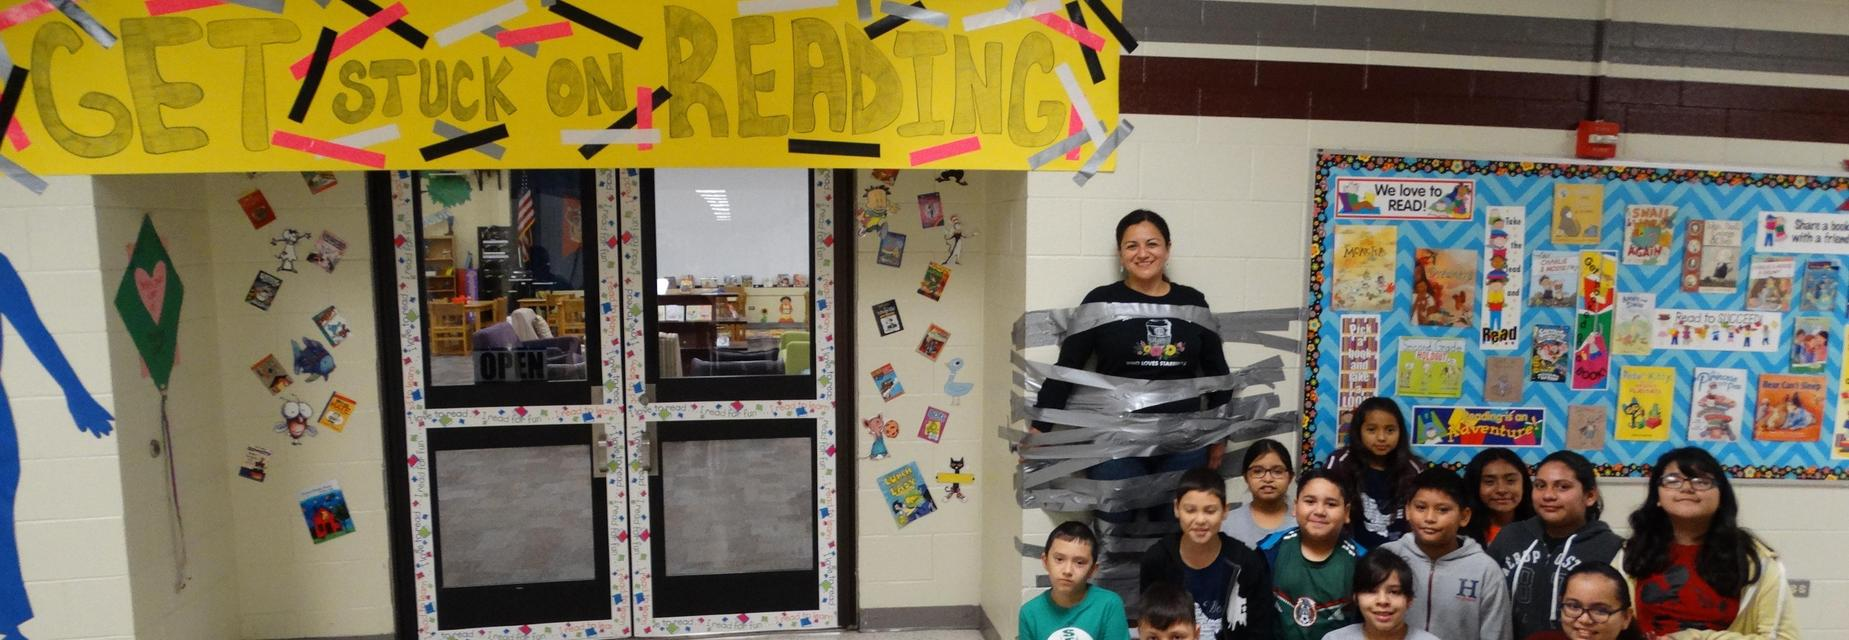 3rd grade teacher taped to the wall